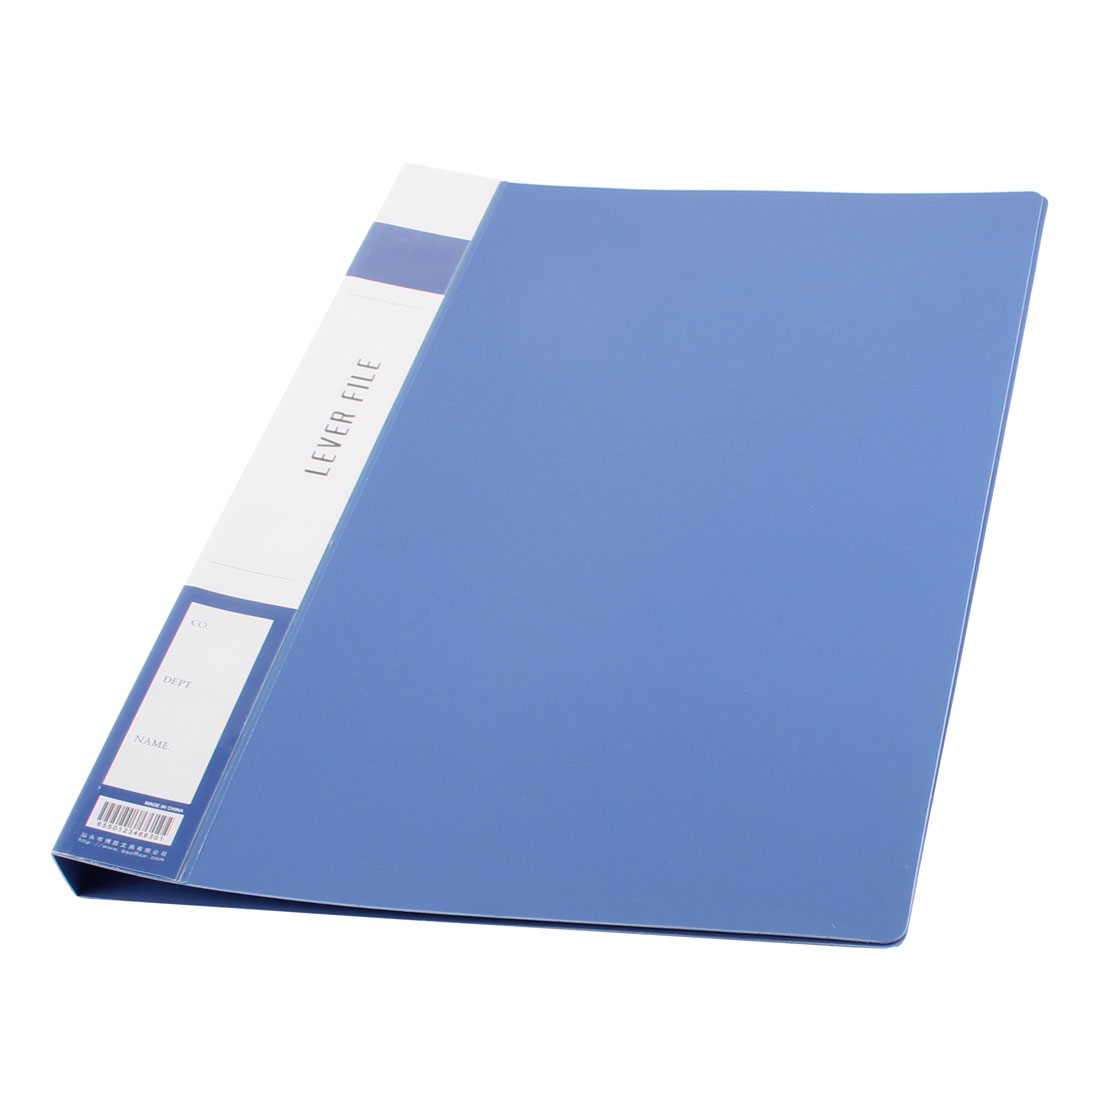 Metal Clip Binder Blue Plastic Document File Folder Holder for A4 Papers